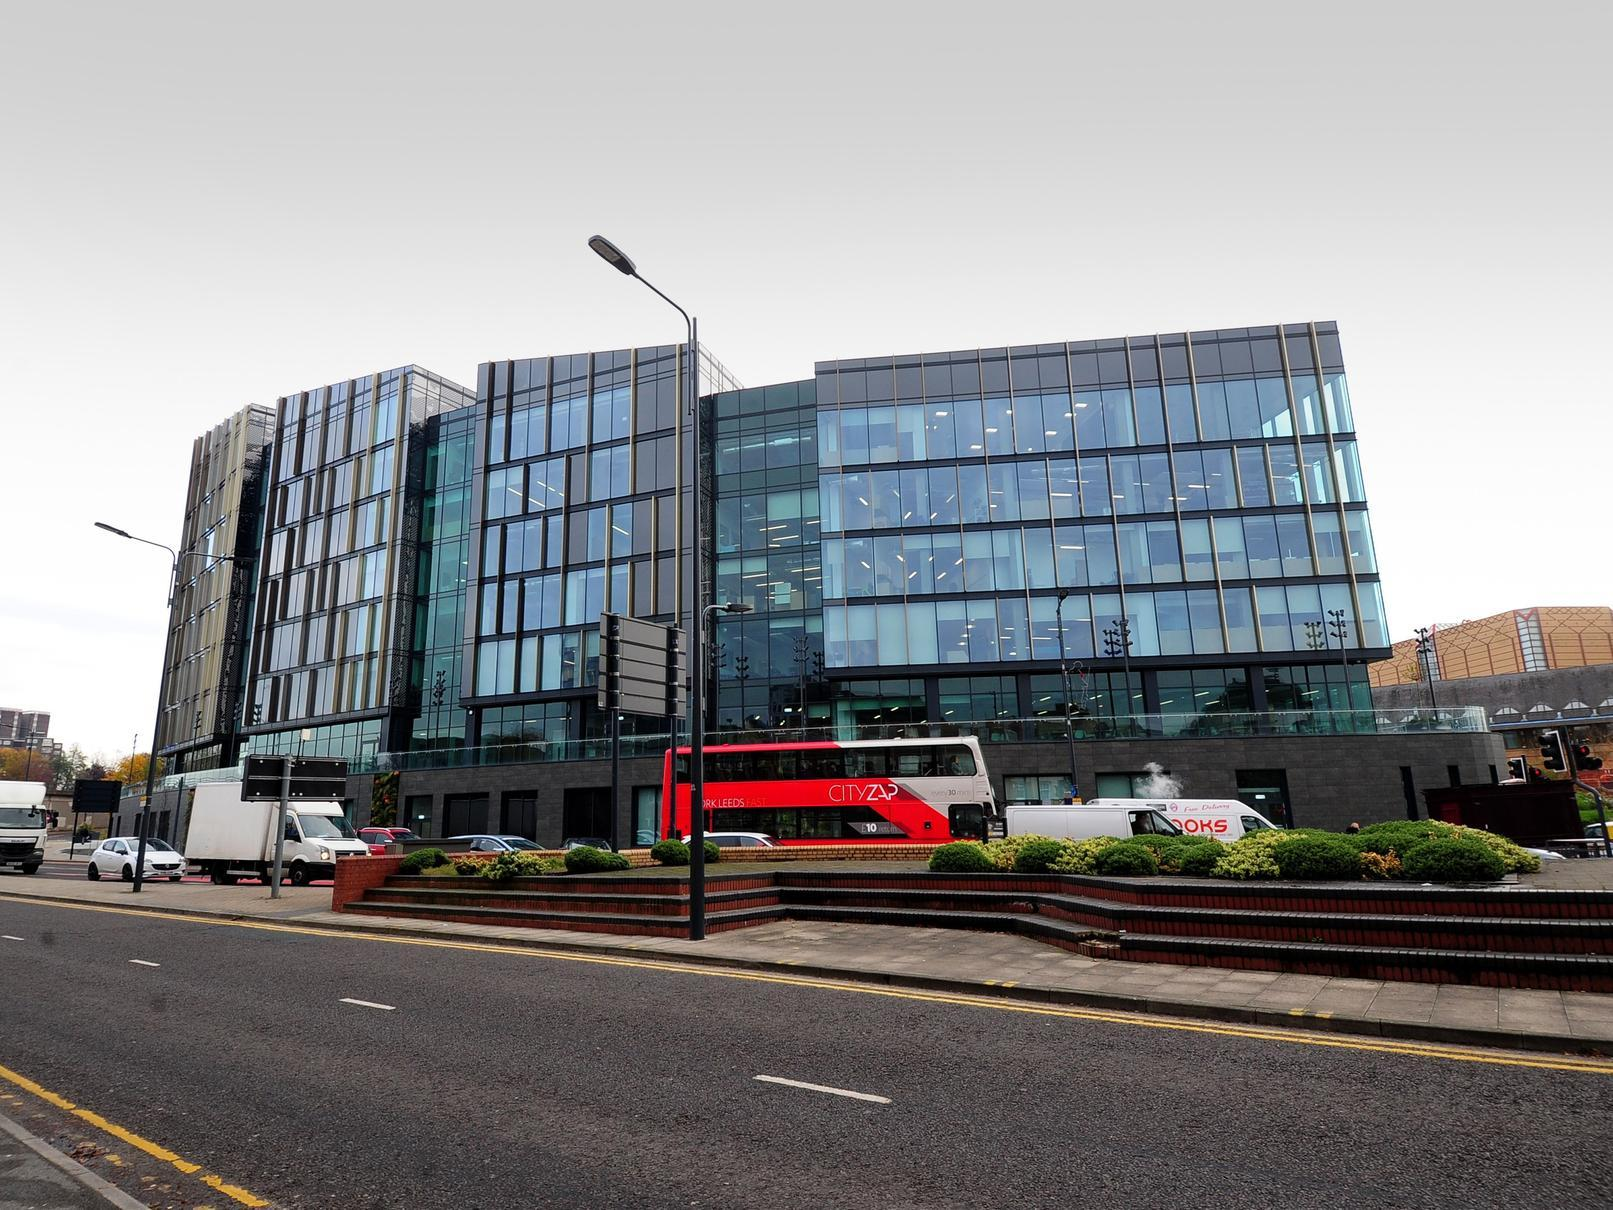 Masked men steal laptops and music equipment from Leeds City College campus at Quarry Hill